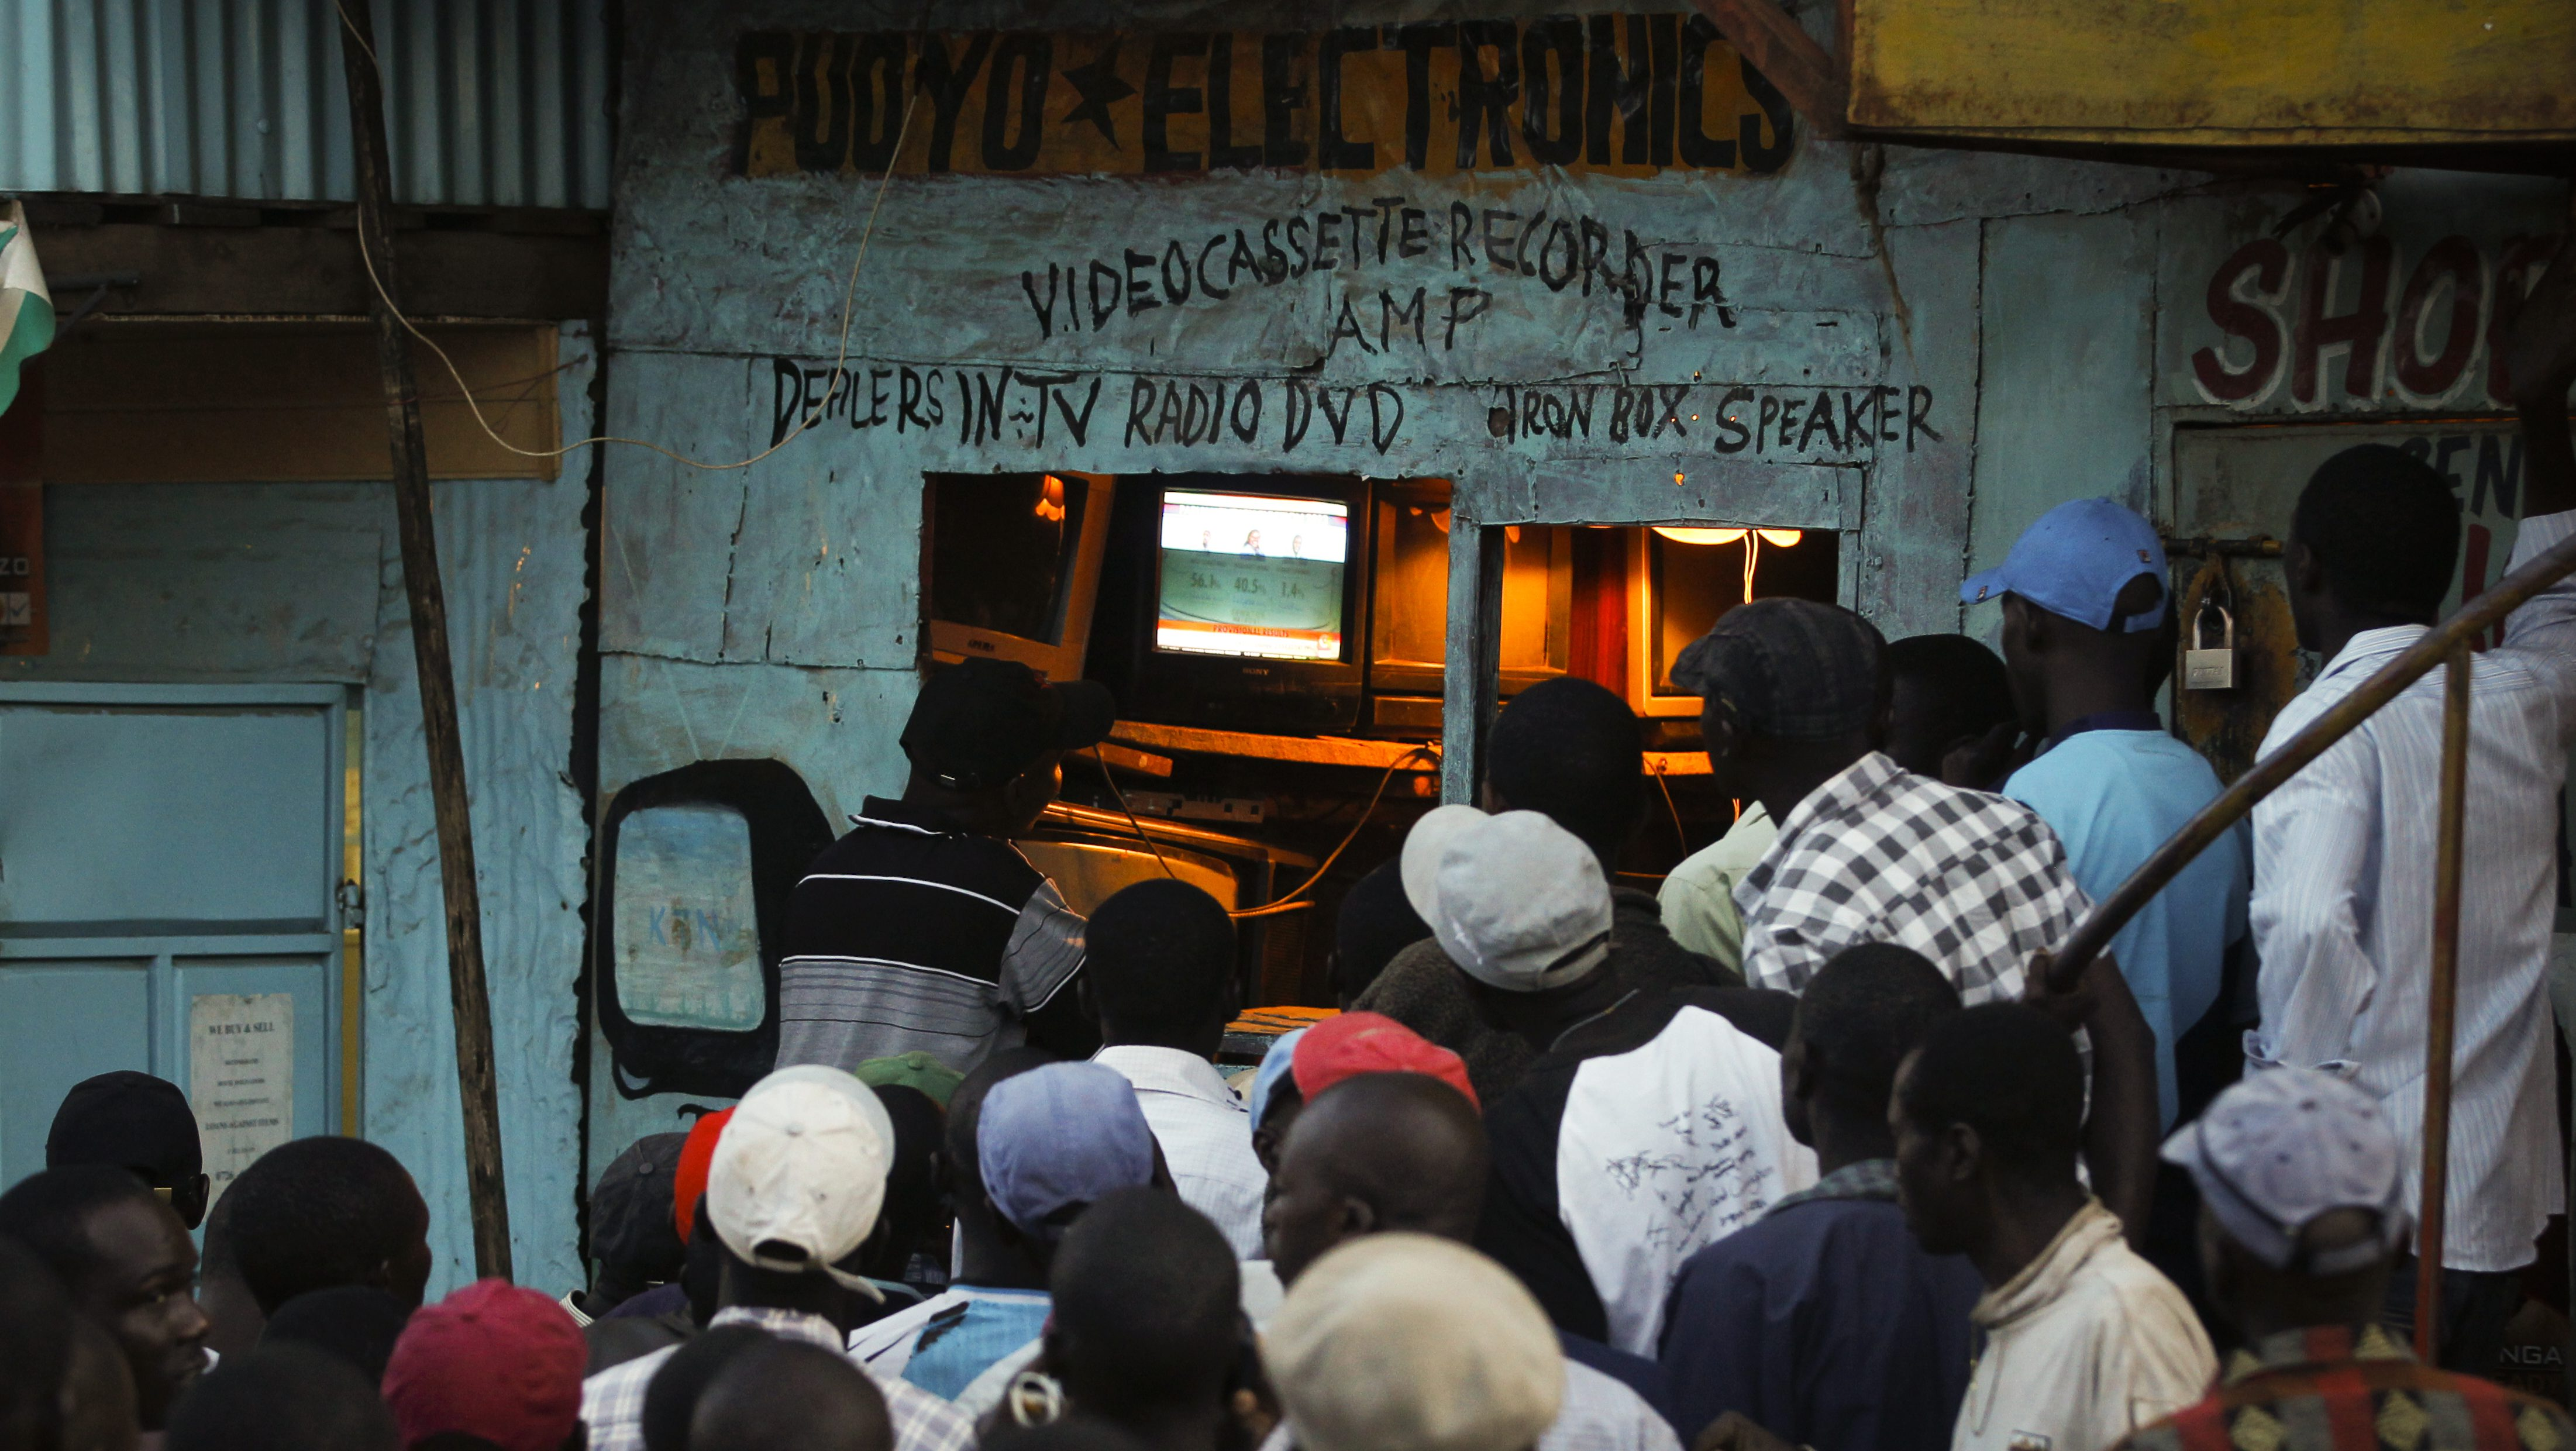 People follow the news on television as the provisional results are slowly being revealed at an electronics shop in the Kibera slum, Nairobi, Kenya, 05 March 2013. Provisional result announced on 05 March show the Deputy Prime Minister Uhuru Kenyatta ahead of Prime Minister Raila Odinga.